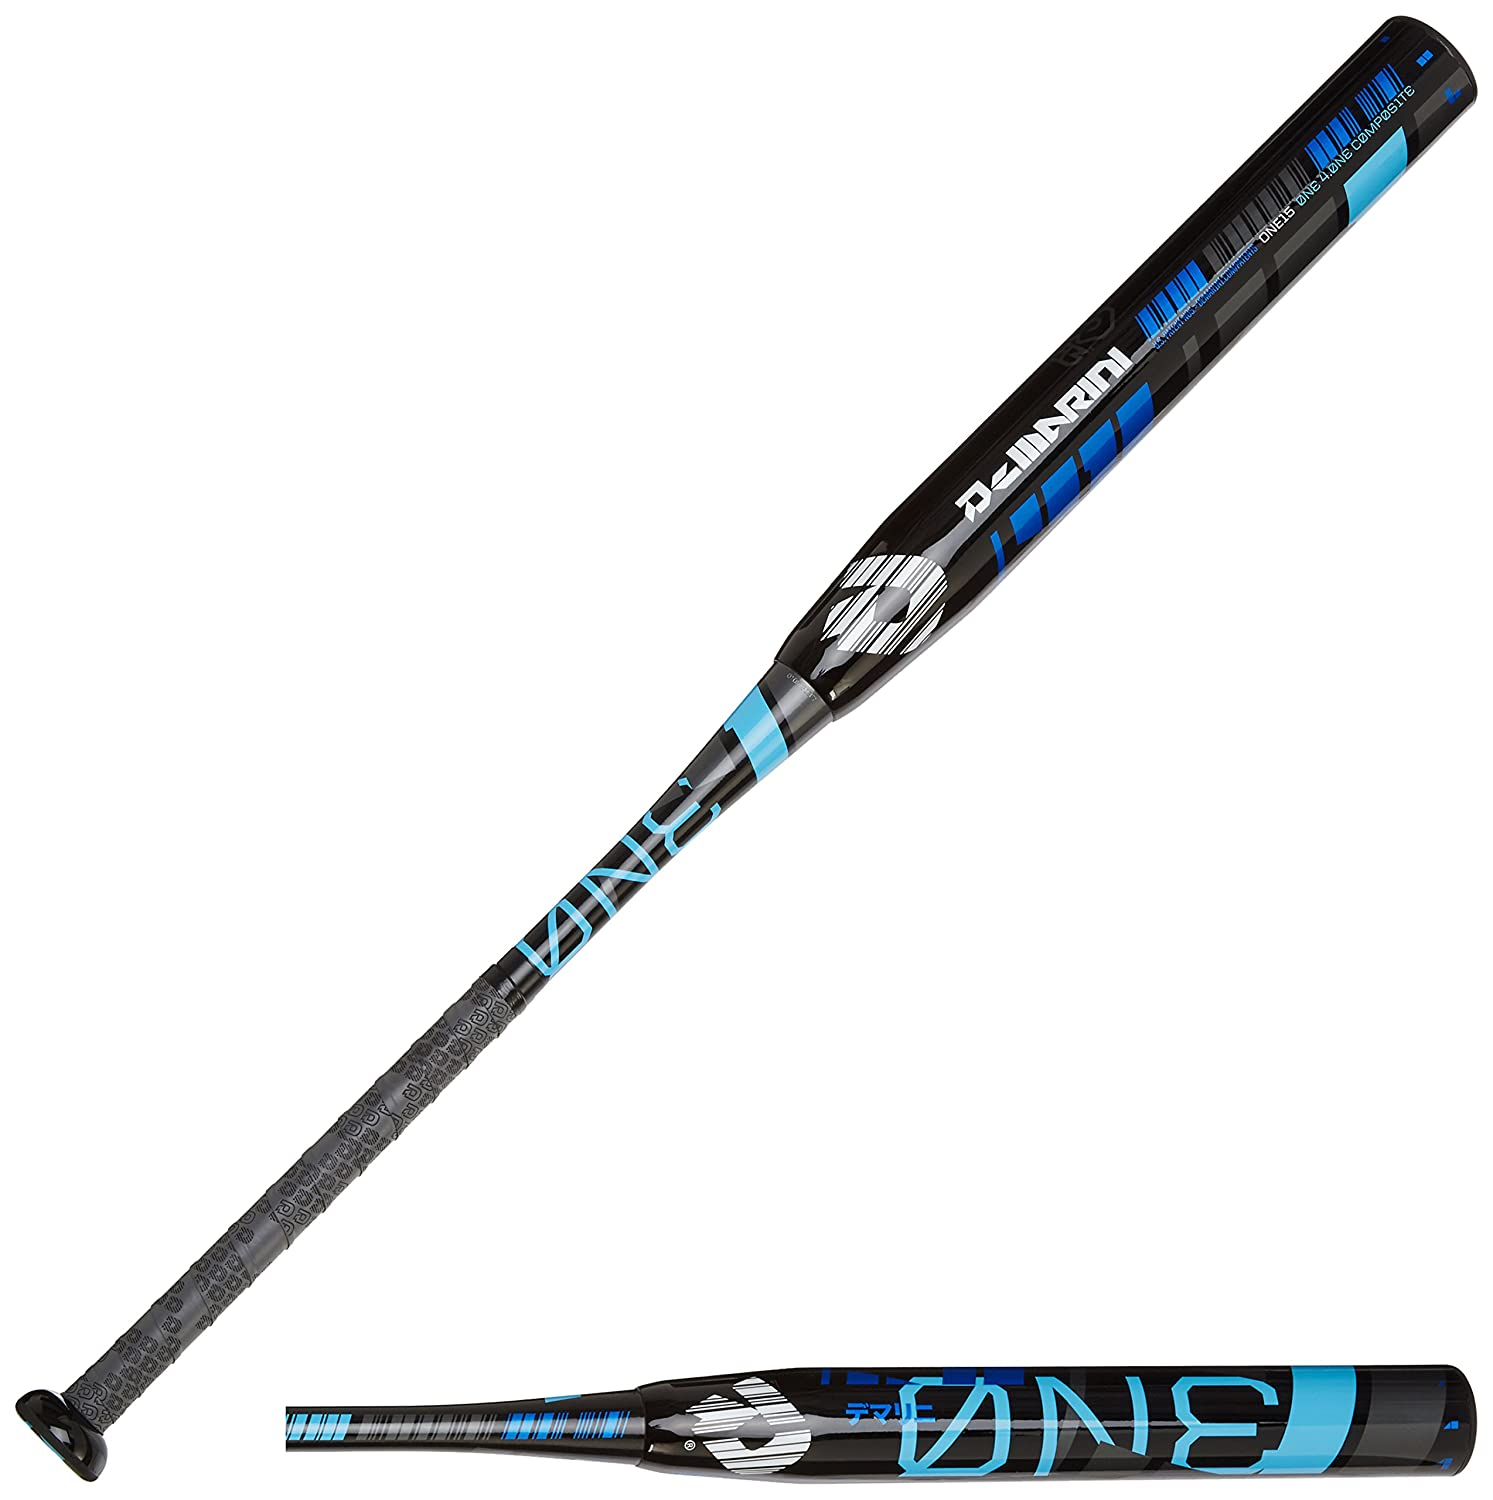 Best Slowpitch Softball Bats Ezteamsport